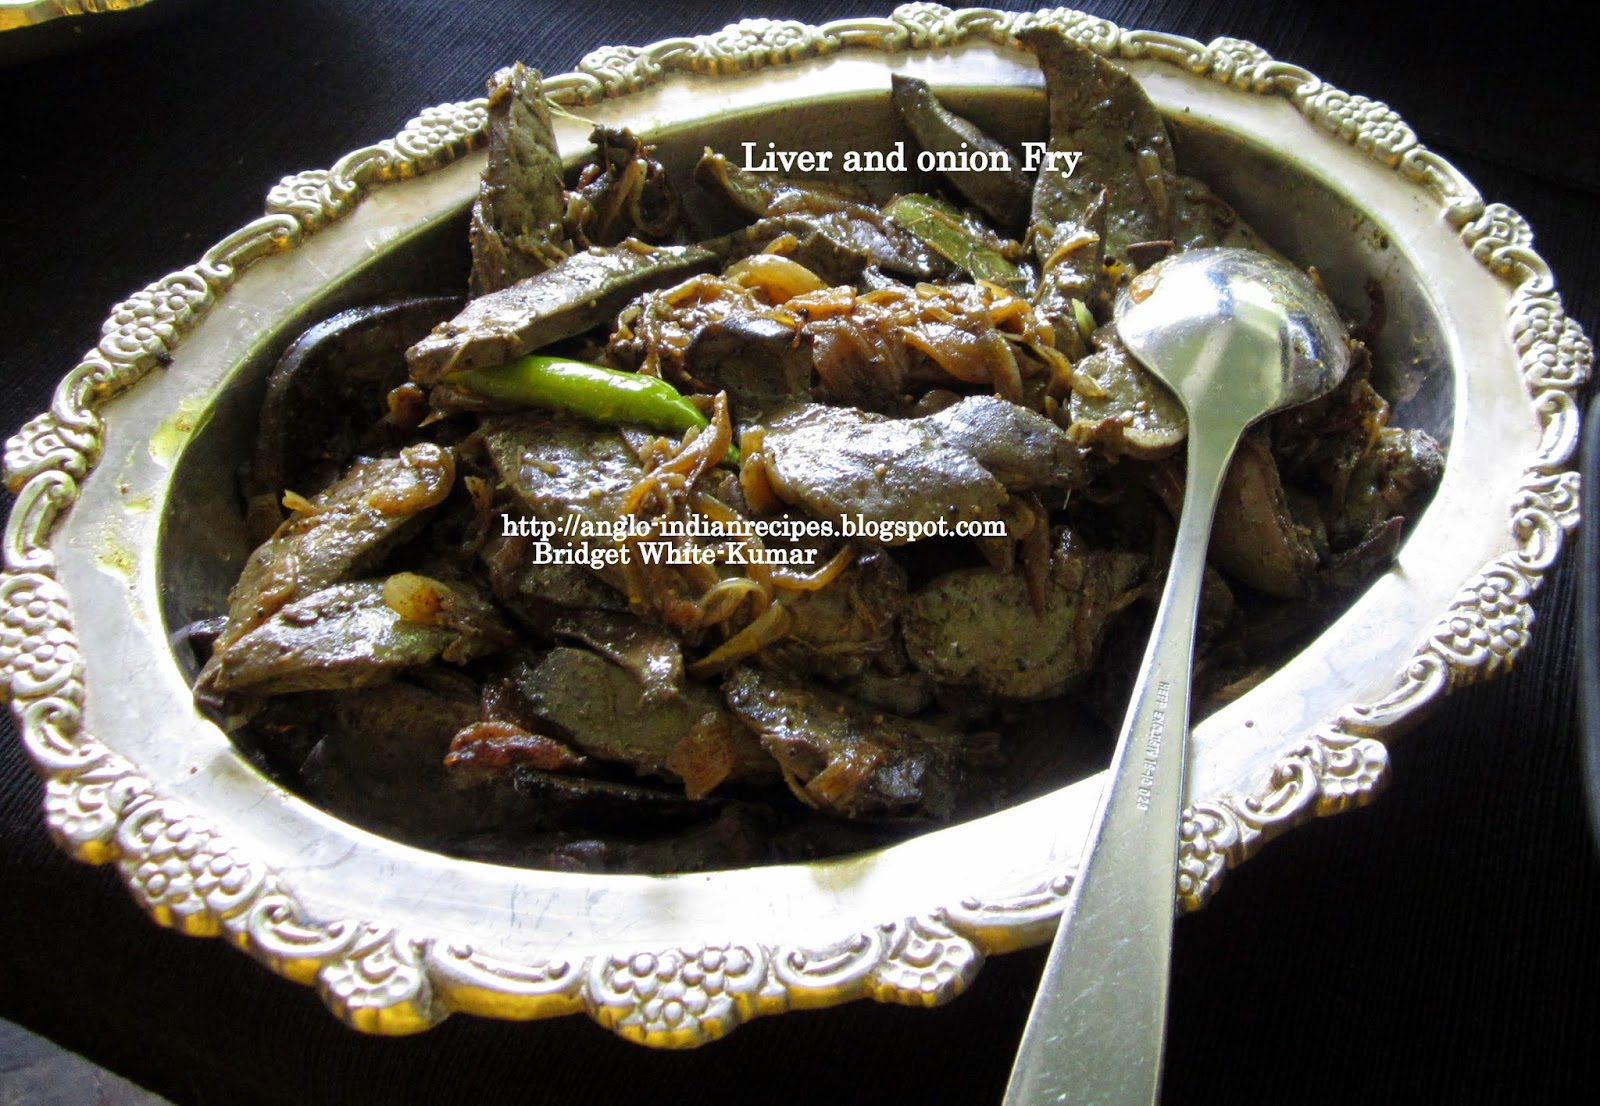 Goat liver with dill leaves indian kitchen cooking recipes - A Simple Anglo Indian Dish The Sliced Onions Enhance The Flavour And Taste Of The Diced Sauteed Liver It Can Be Served As A Side Dish With Steamed Rice